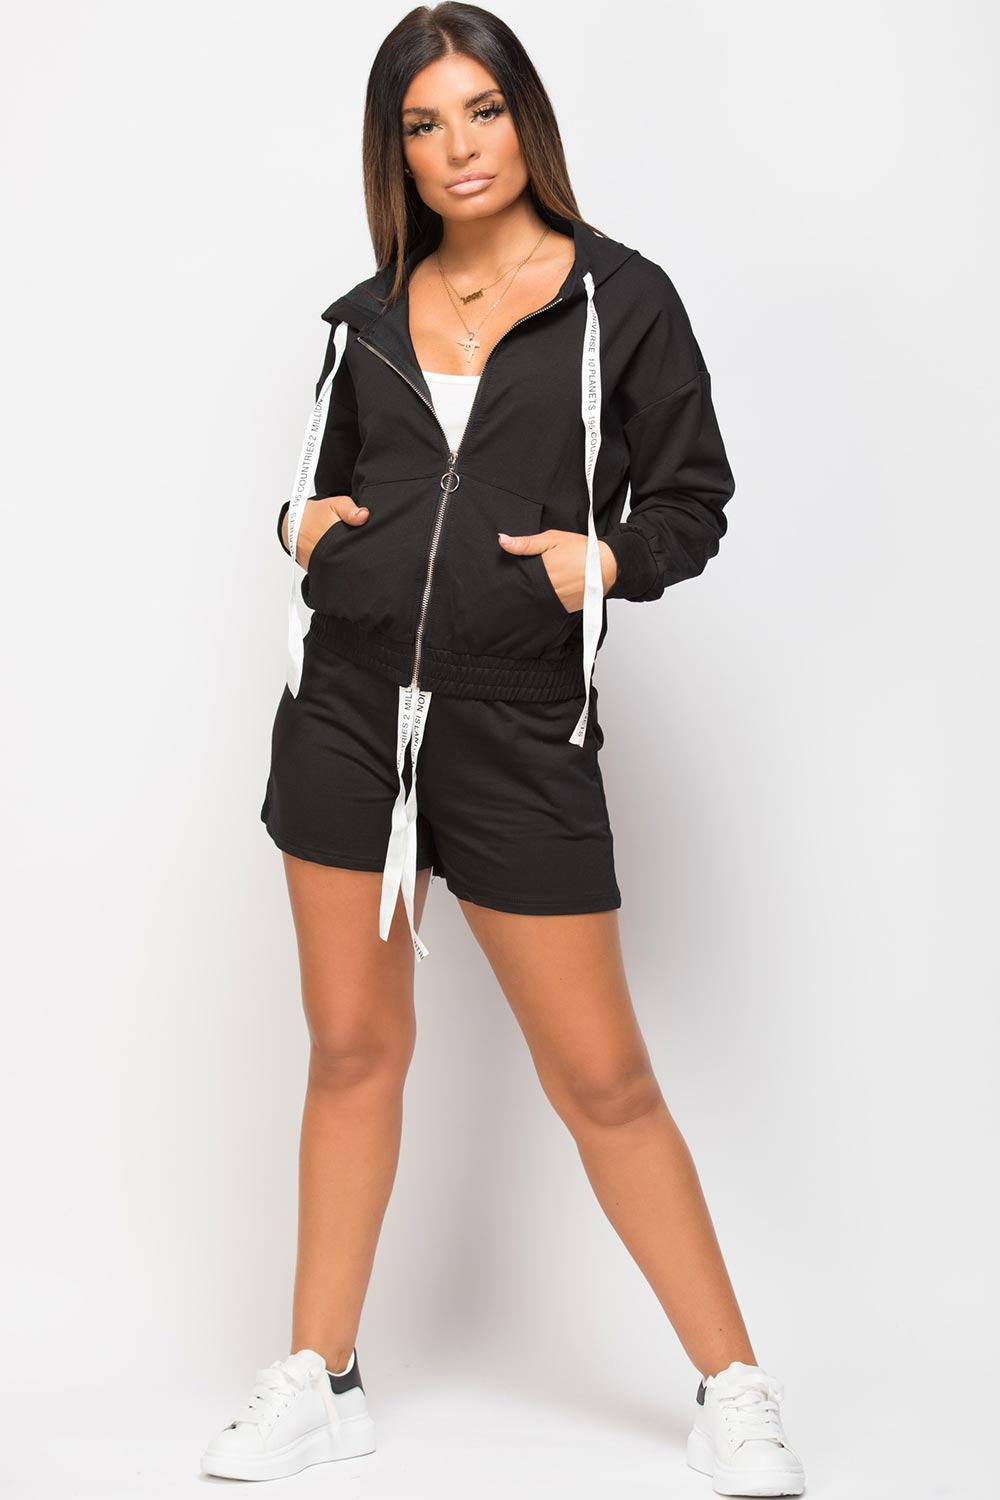 hoodie top and shorts set black